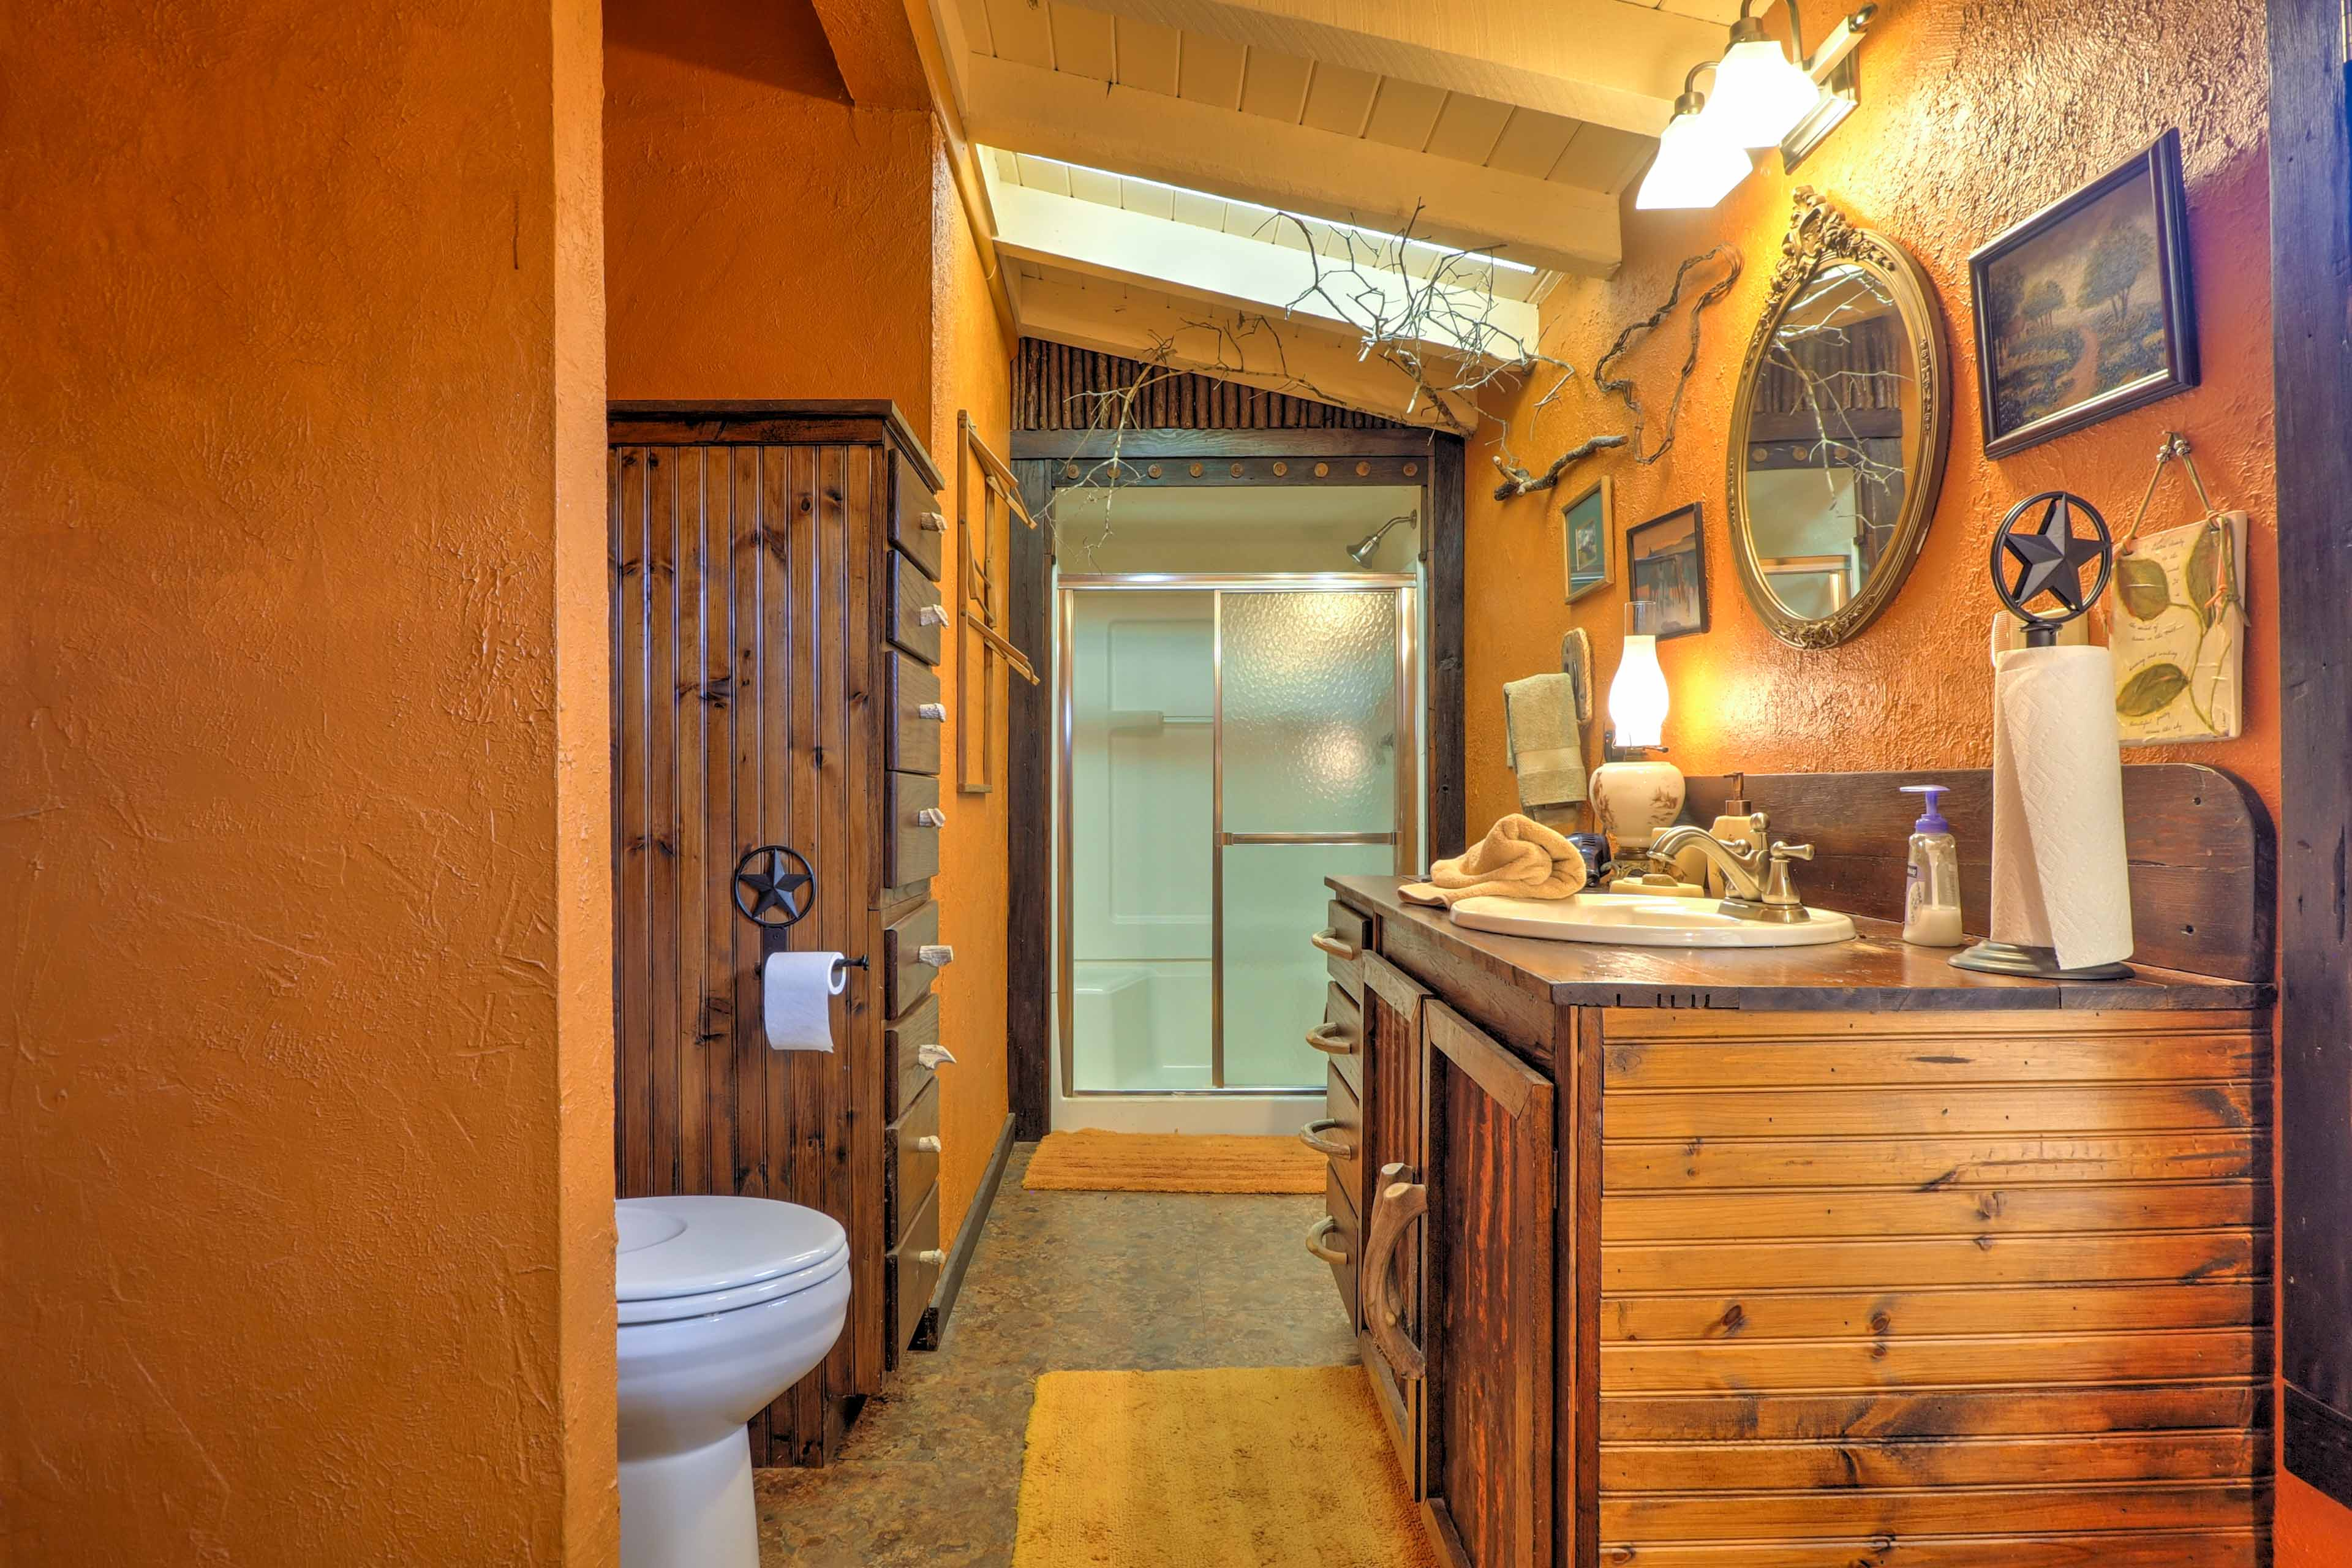 Freshen up in this bathroom before heading out for a special evening in town.